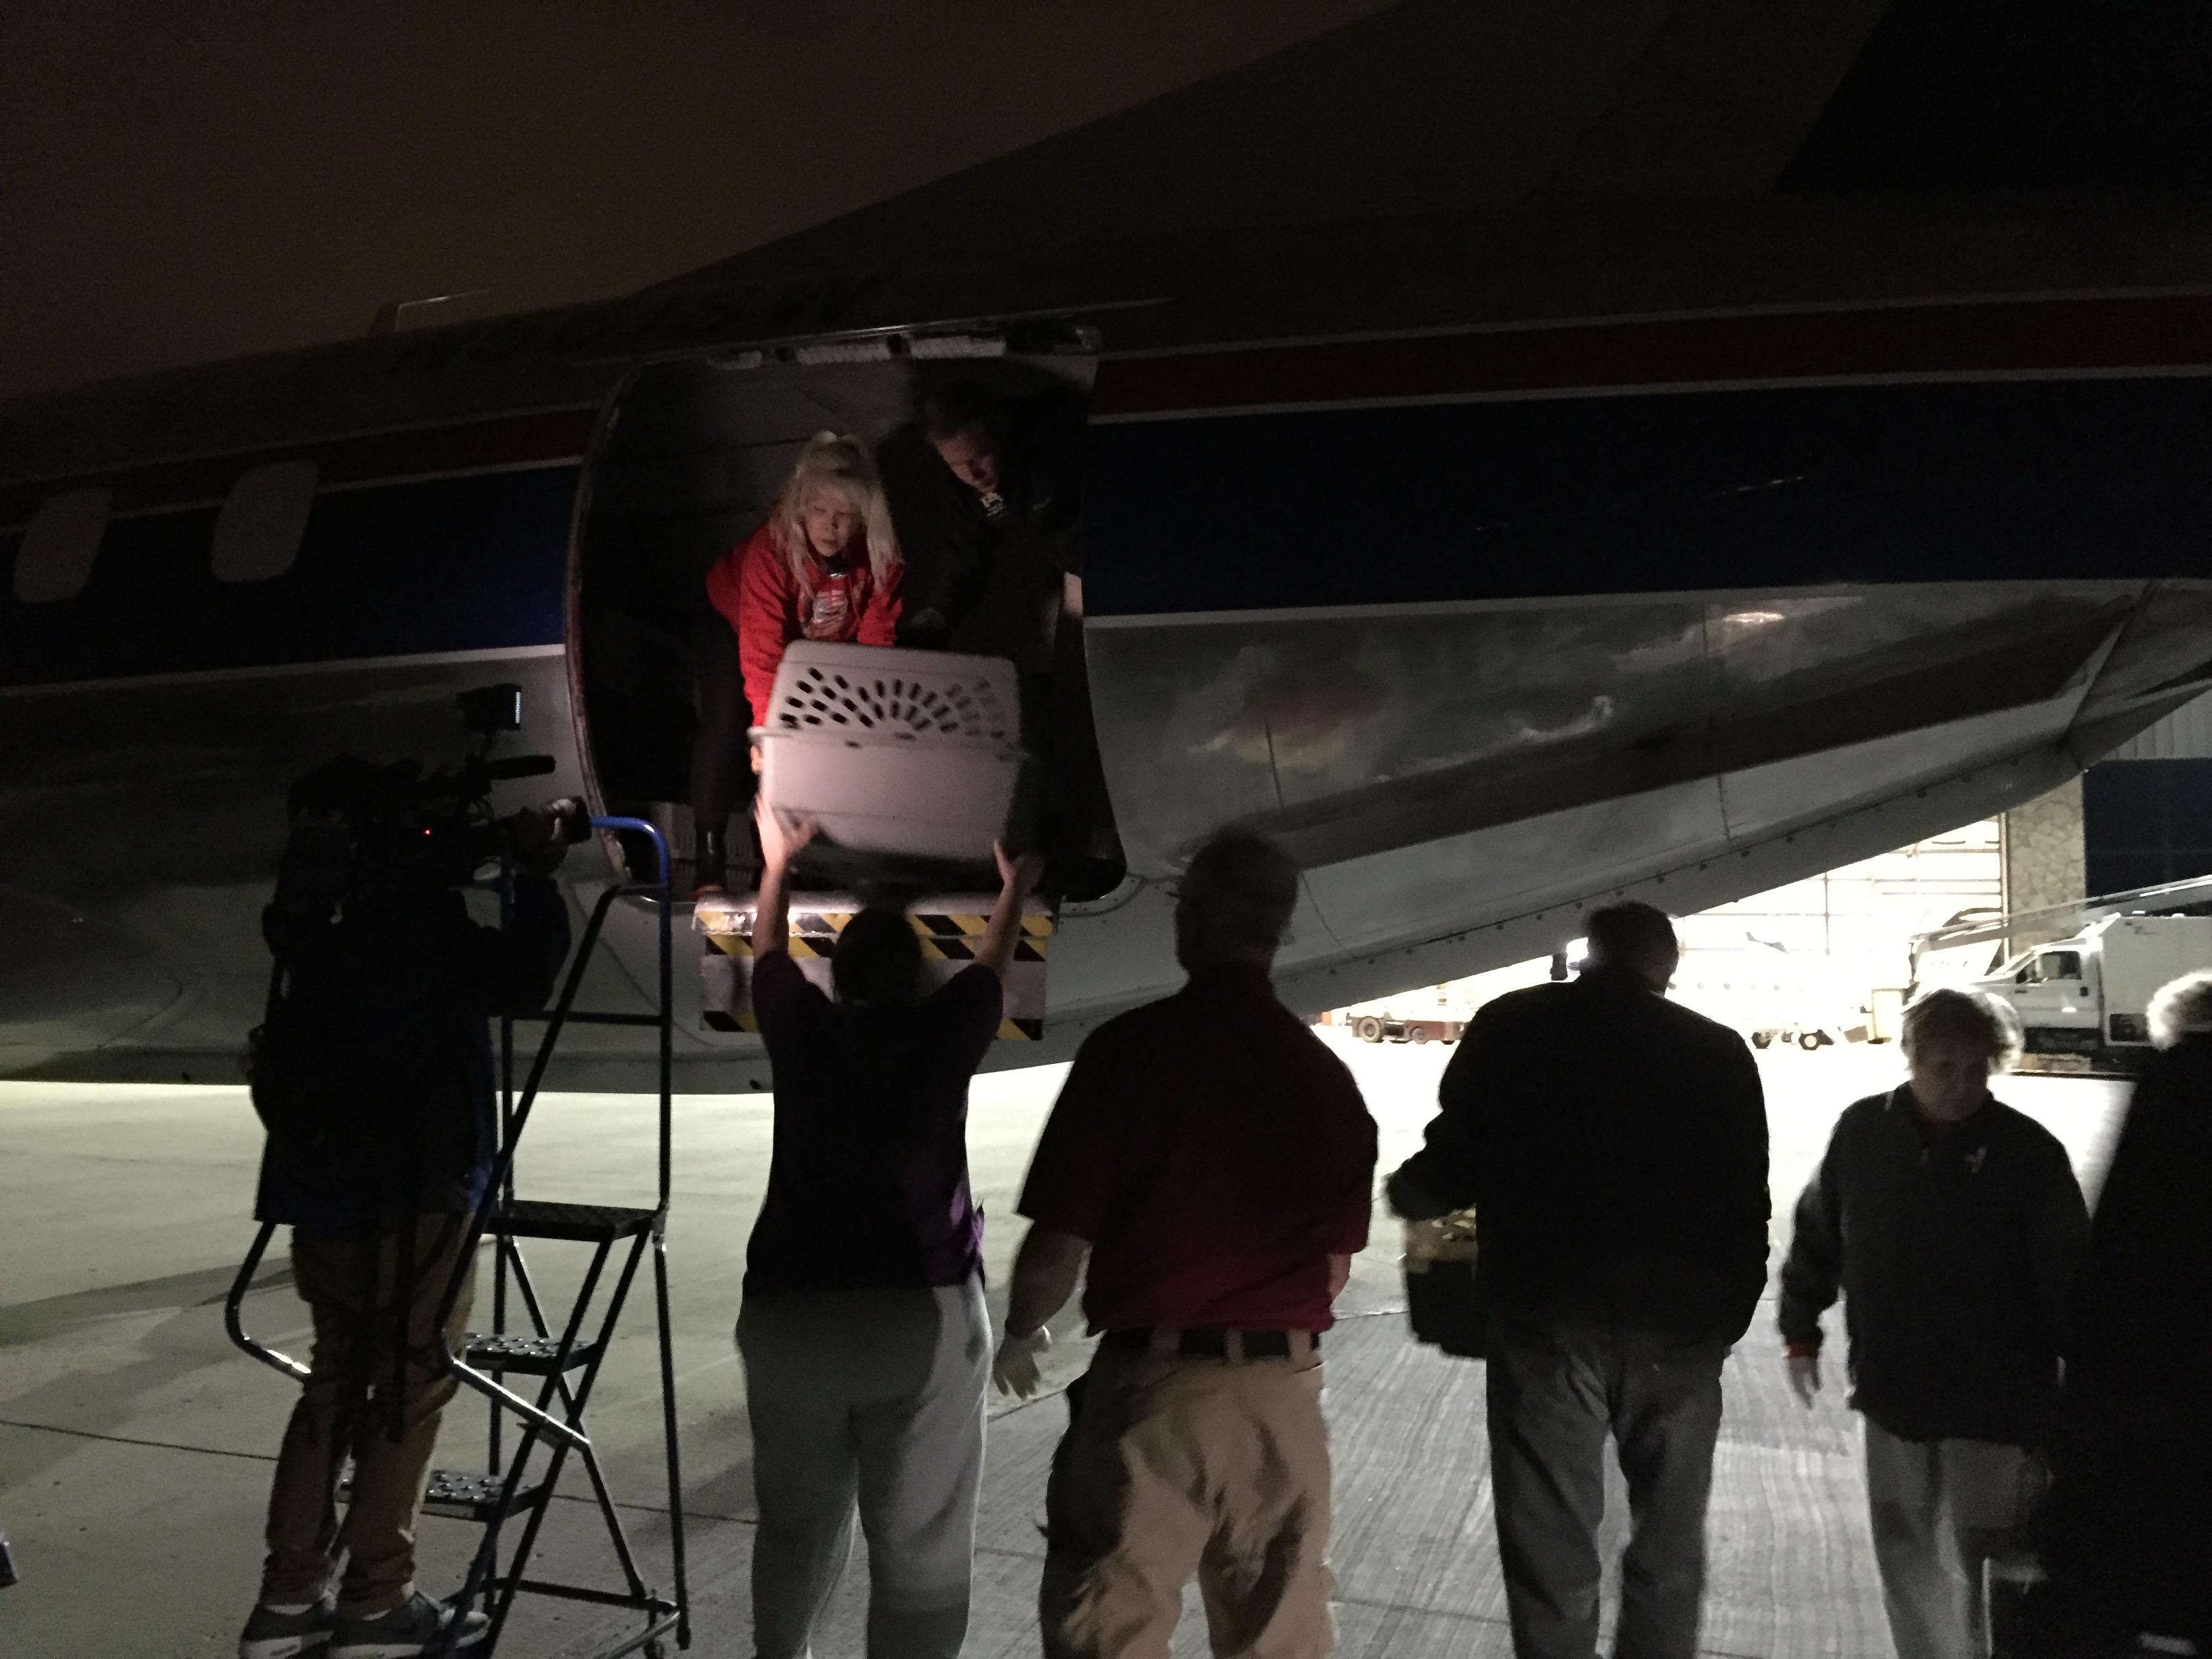 Unloading the plane in Wisconsin. (Photo courtesy of Cari Tetzlaff)